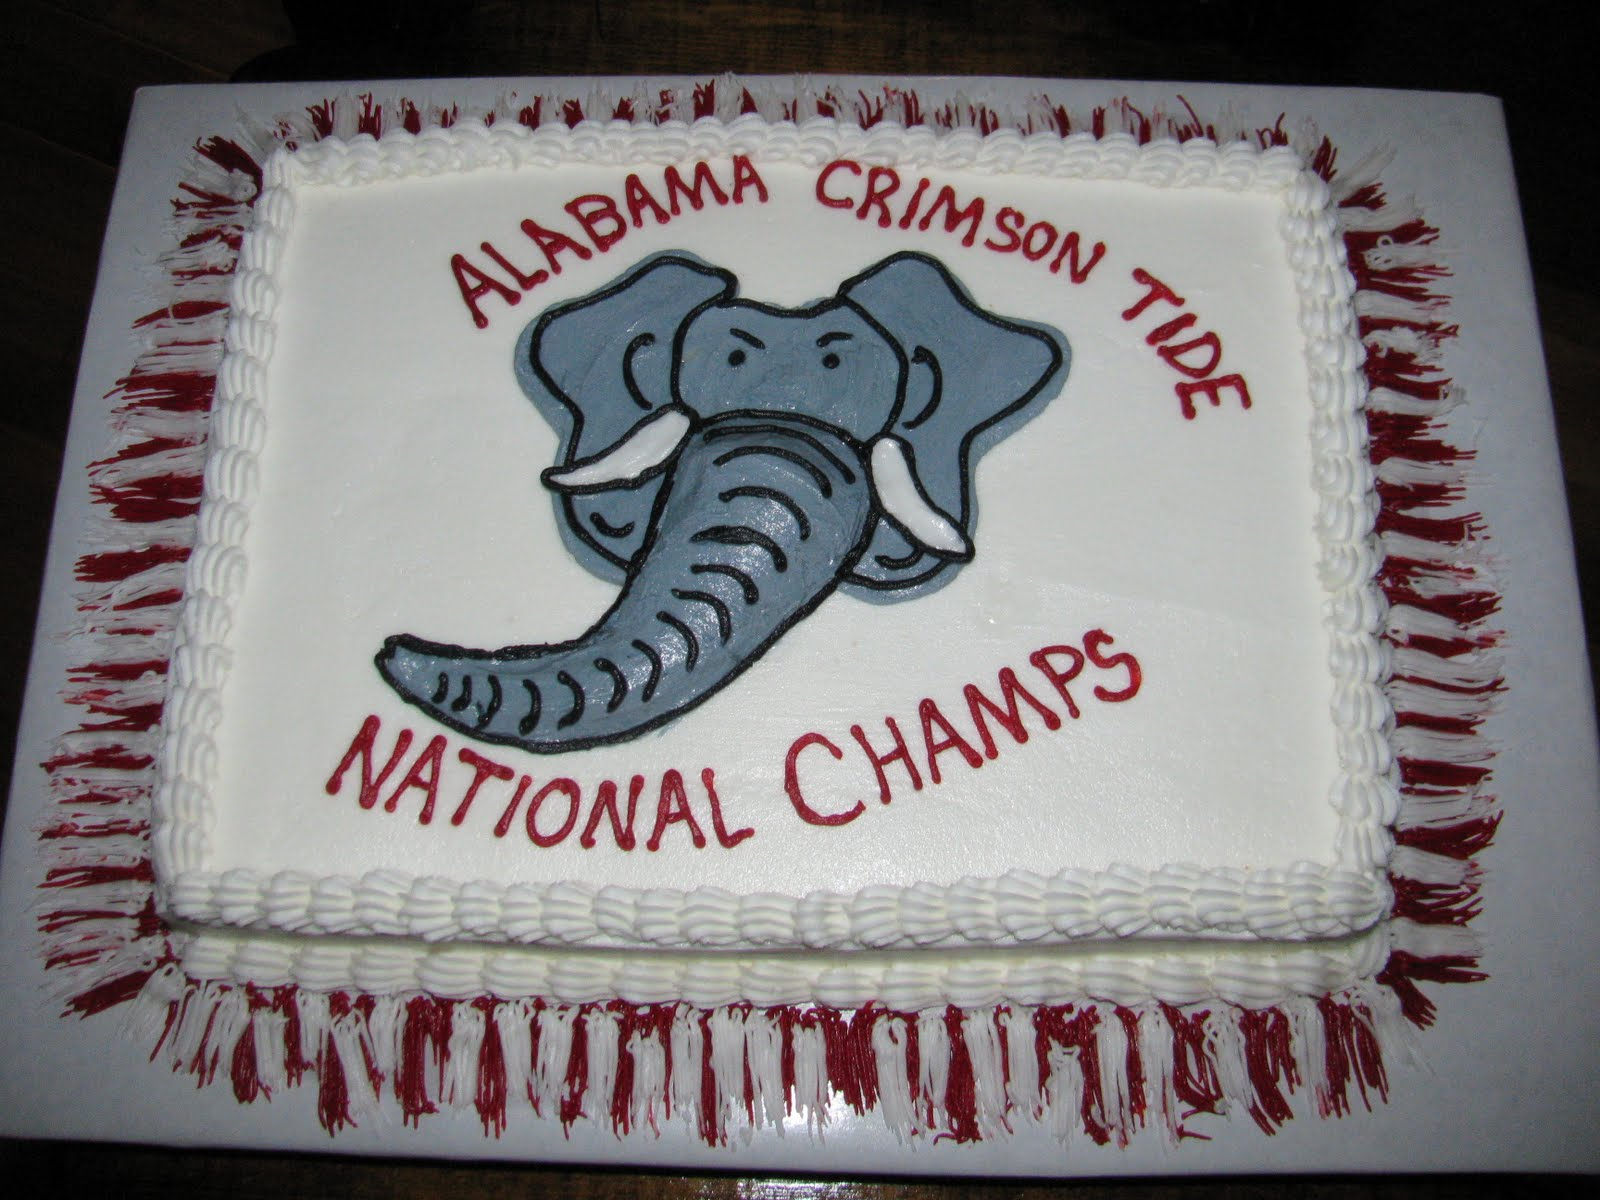 The Dessert Box Alabama Crimson Tide